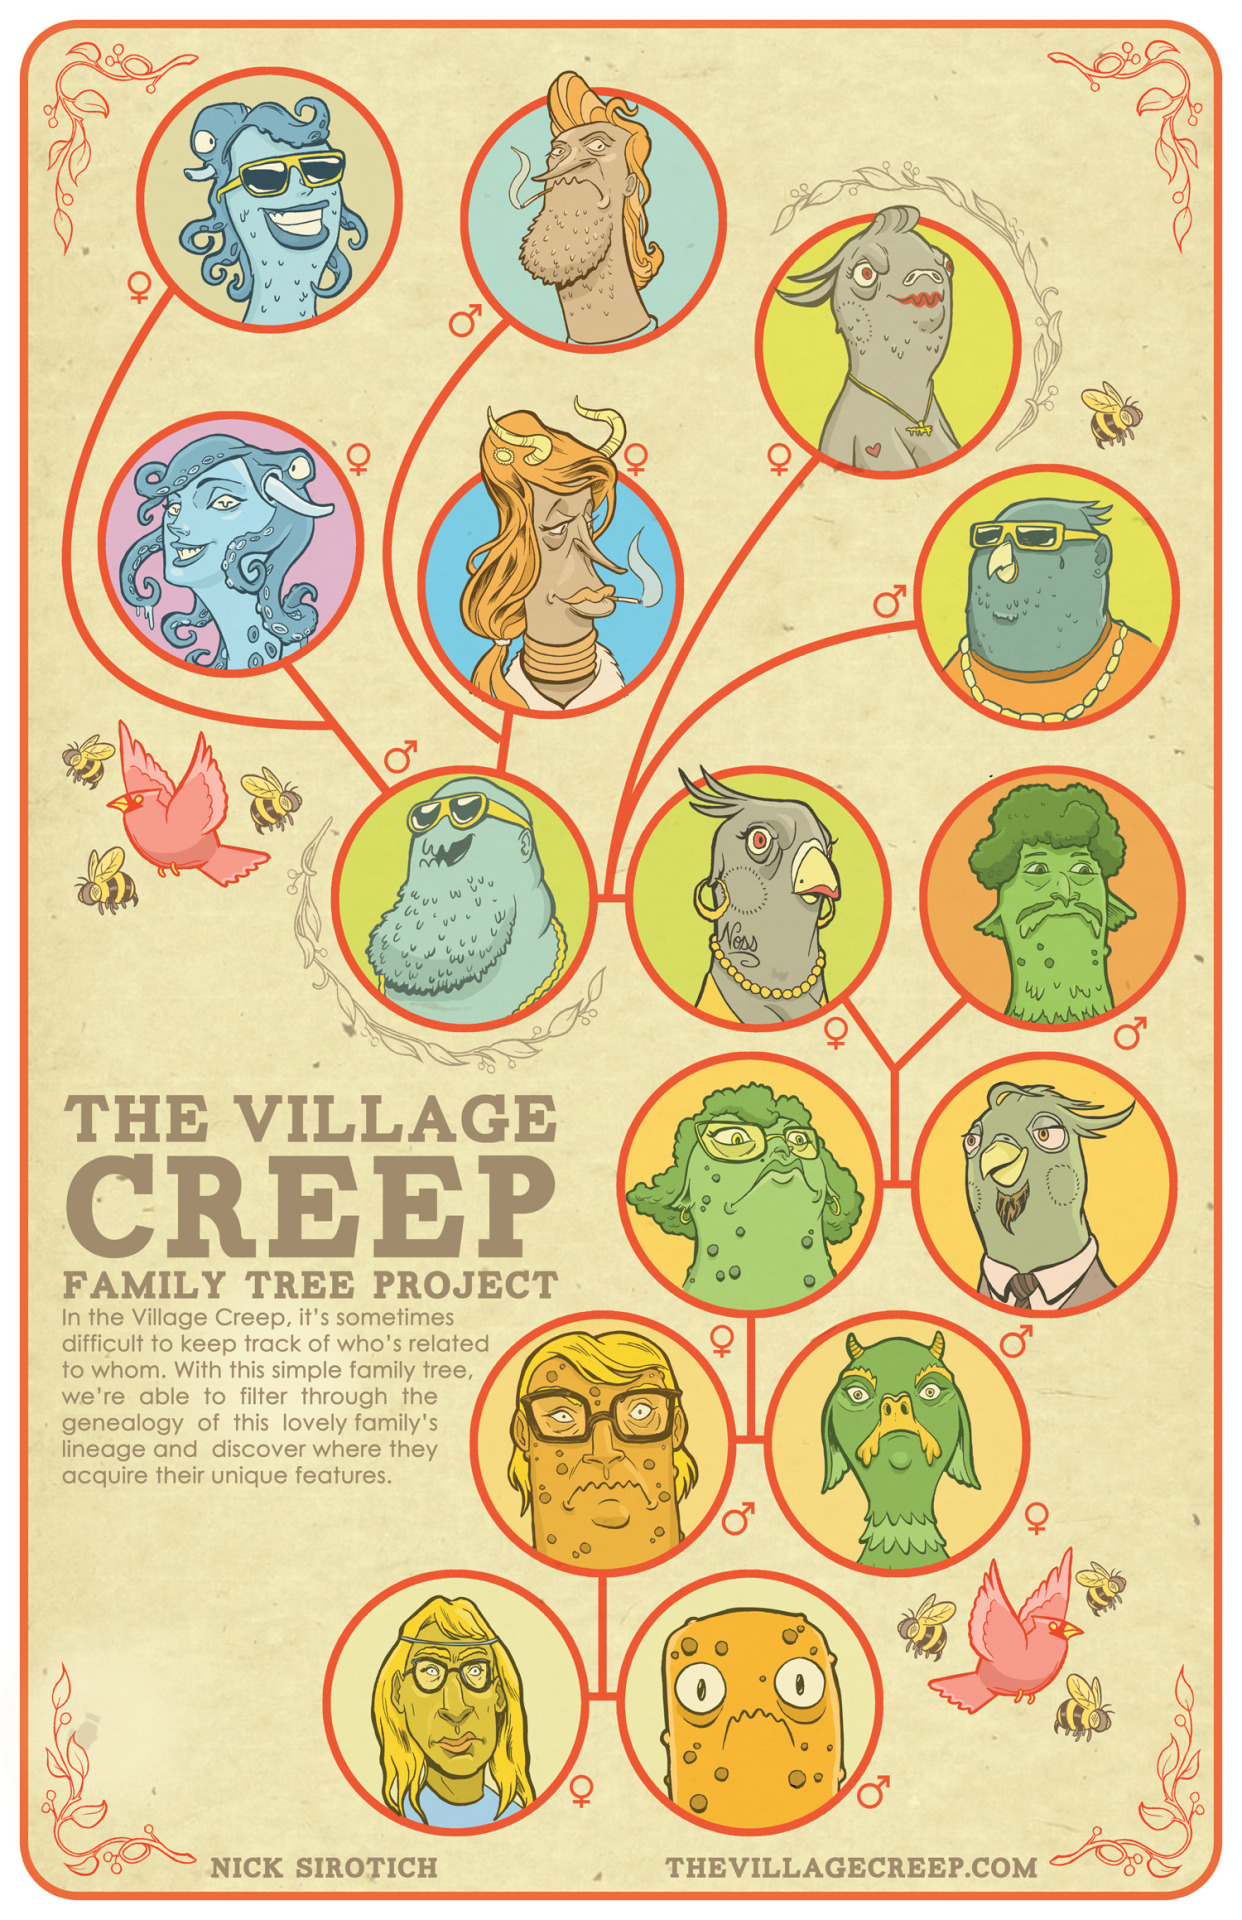 THE VILLAGE CREEP _ FAMILY TREE PROJECT 1  In the Village Creep, it's sometimes difficult to keep track of who's related to whom. With this simple family tree, we're able to filter through the  genealogy of this lovely family's lineage and discover where they acquire their unique features. New Family Tree Project arriving in shops soon!